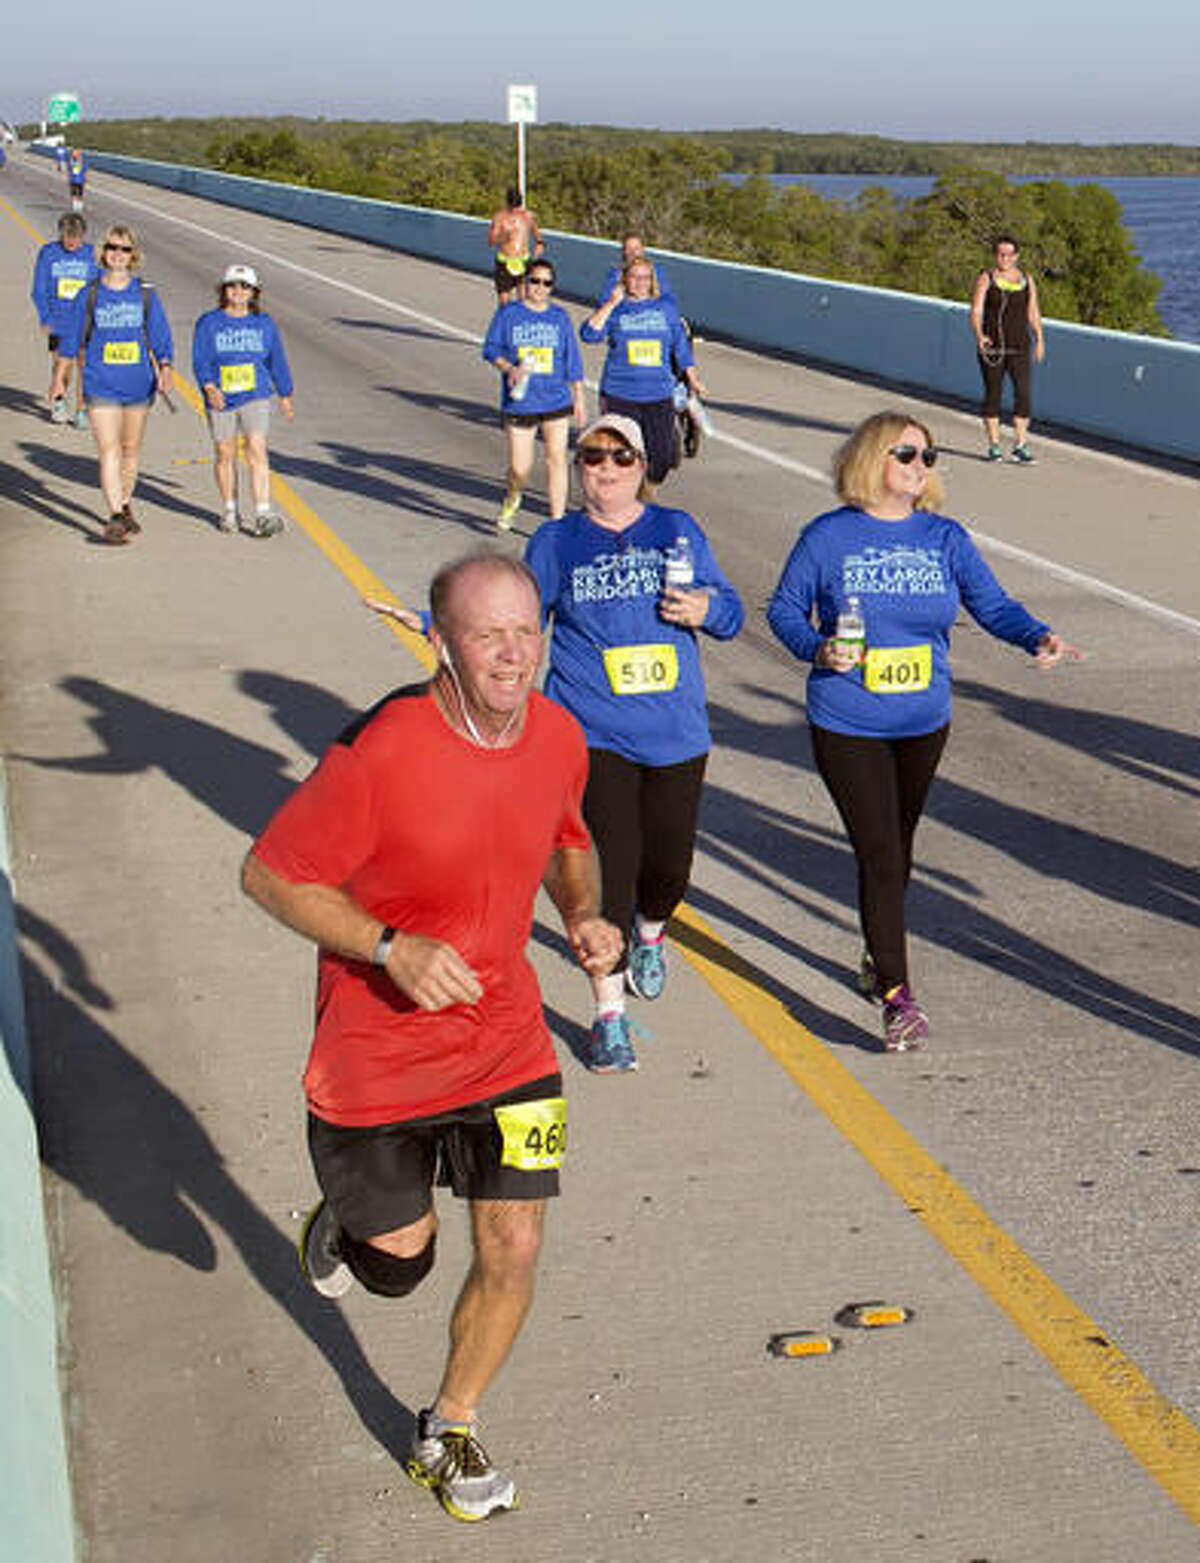 In this photo provided by the Florida Keys News Bureau, competitors in the 5k division of the Key Largo Bridge Run head to the finish line Saturday, Nov. 12, 2016. Some 465 registered entrants competed in 5k, 10k and half-marathon classes that took participants out and back over the 1.4-mile-long Jewfish Creek Bridge and land areas. (Bob Care/Florida Keys News Bureau via AP )